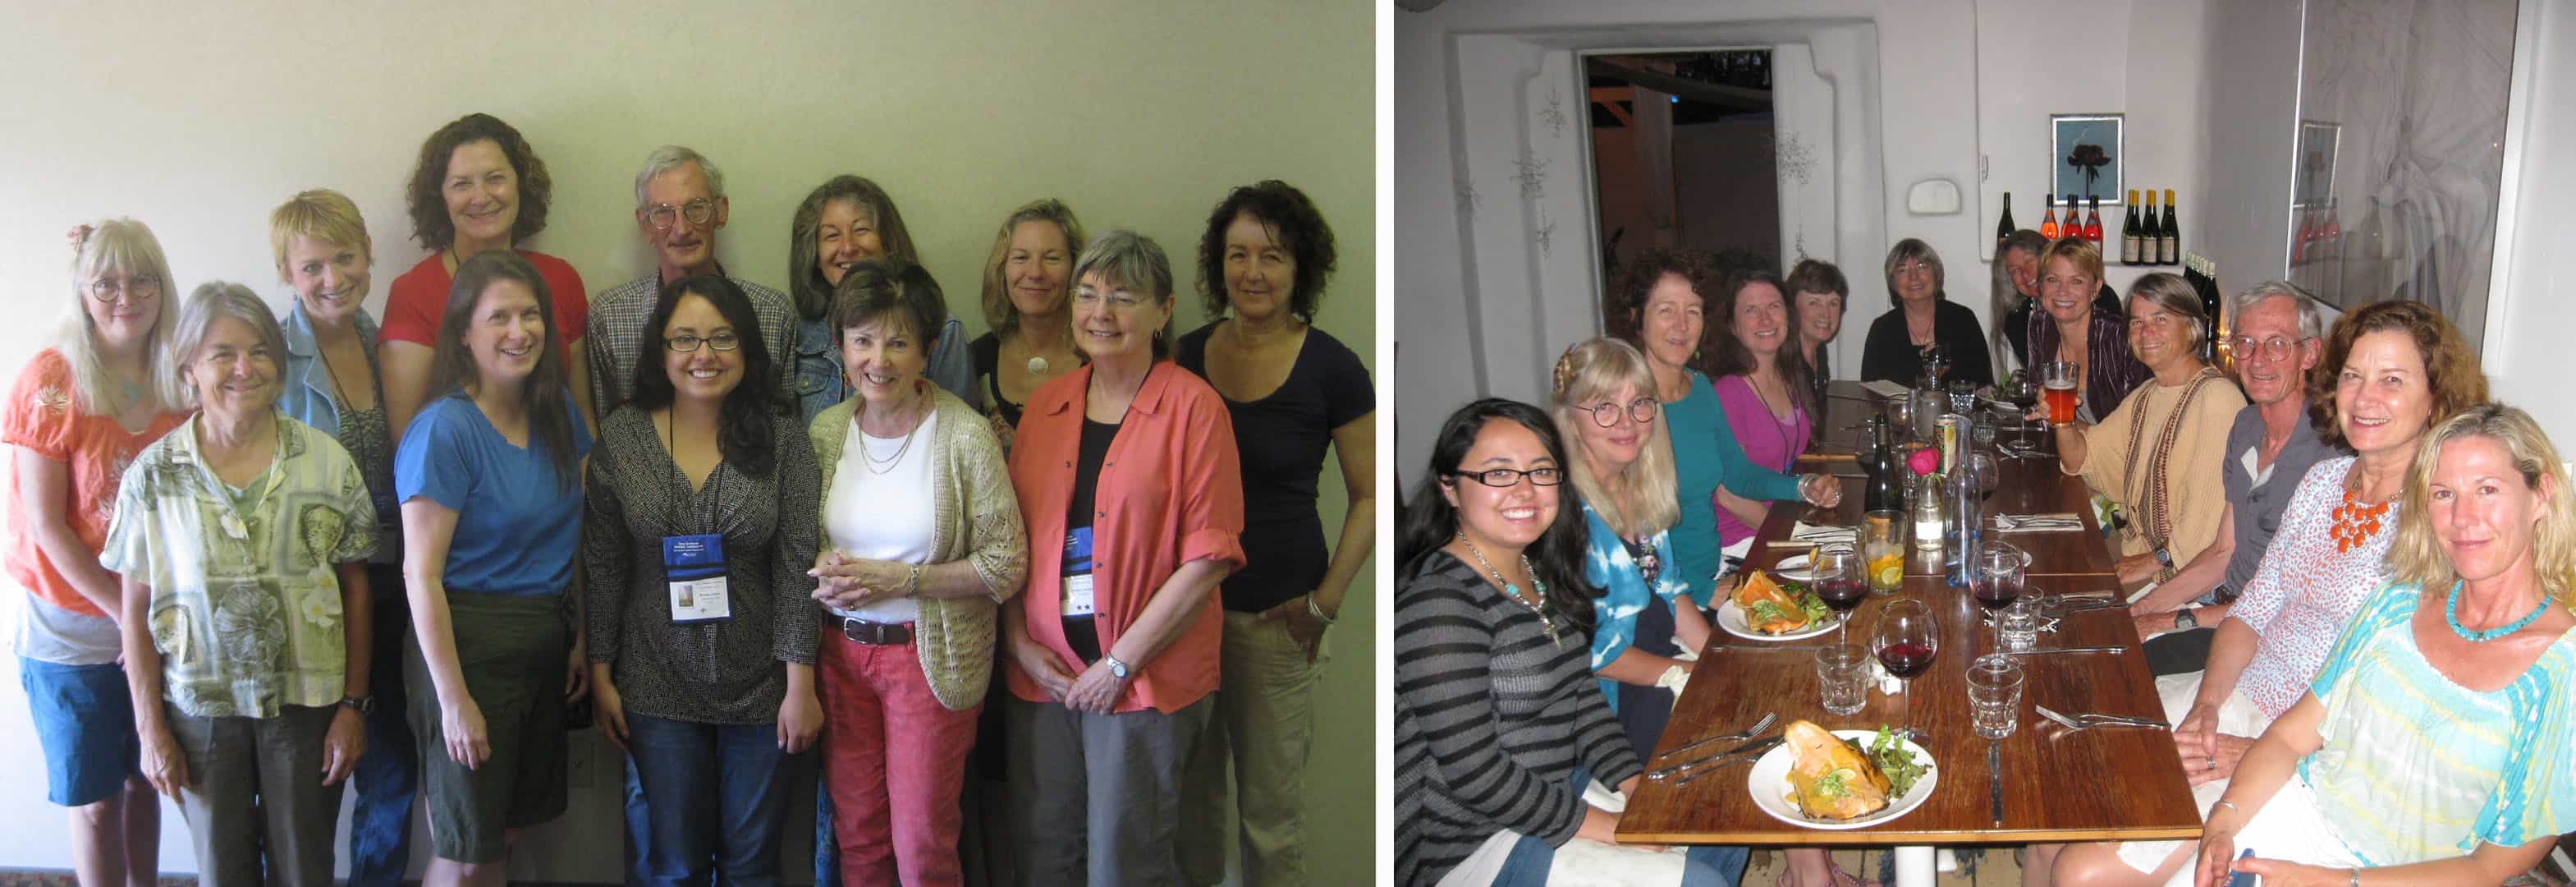 Taos Summer Writers' Conference 2014